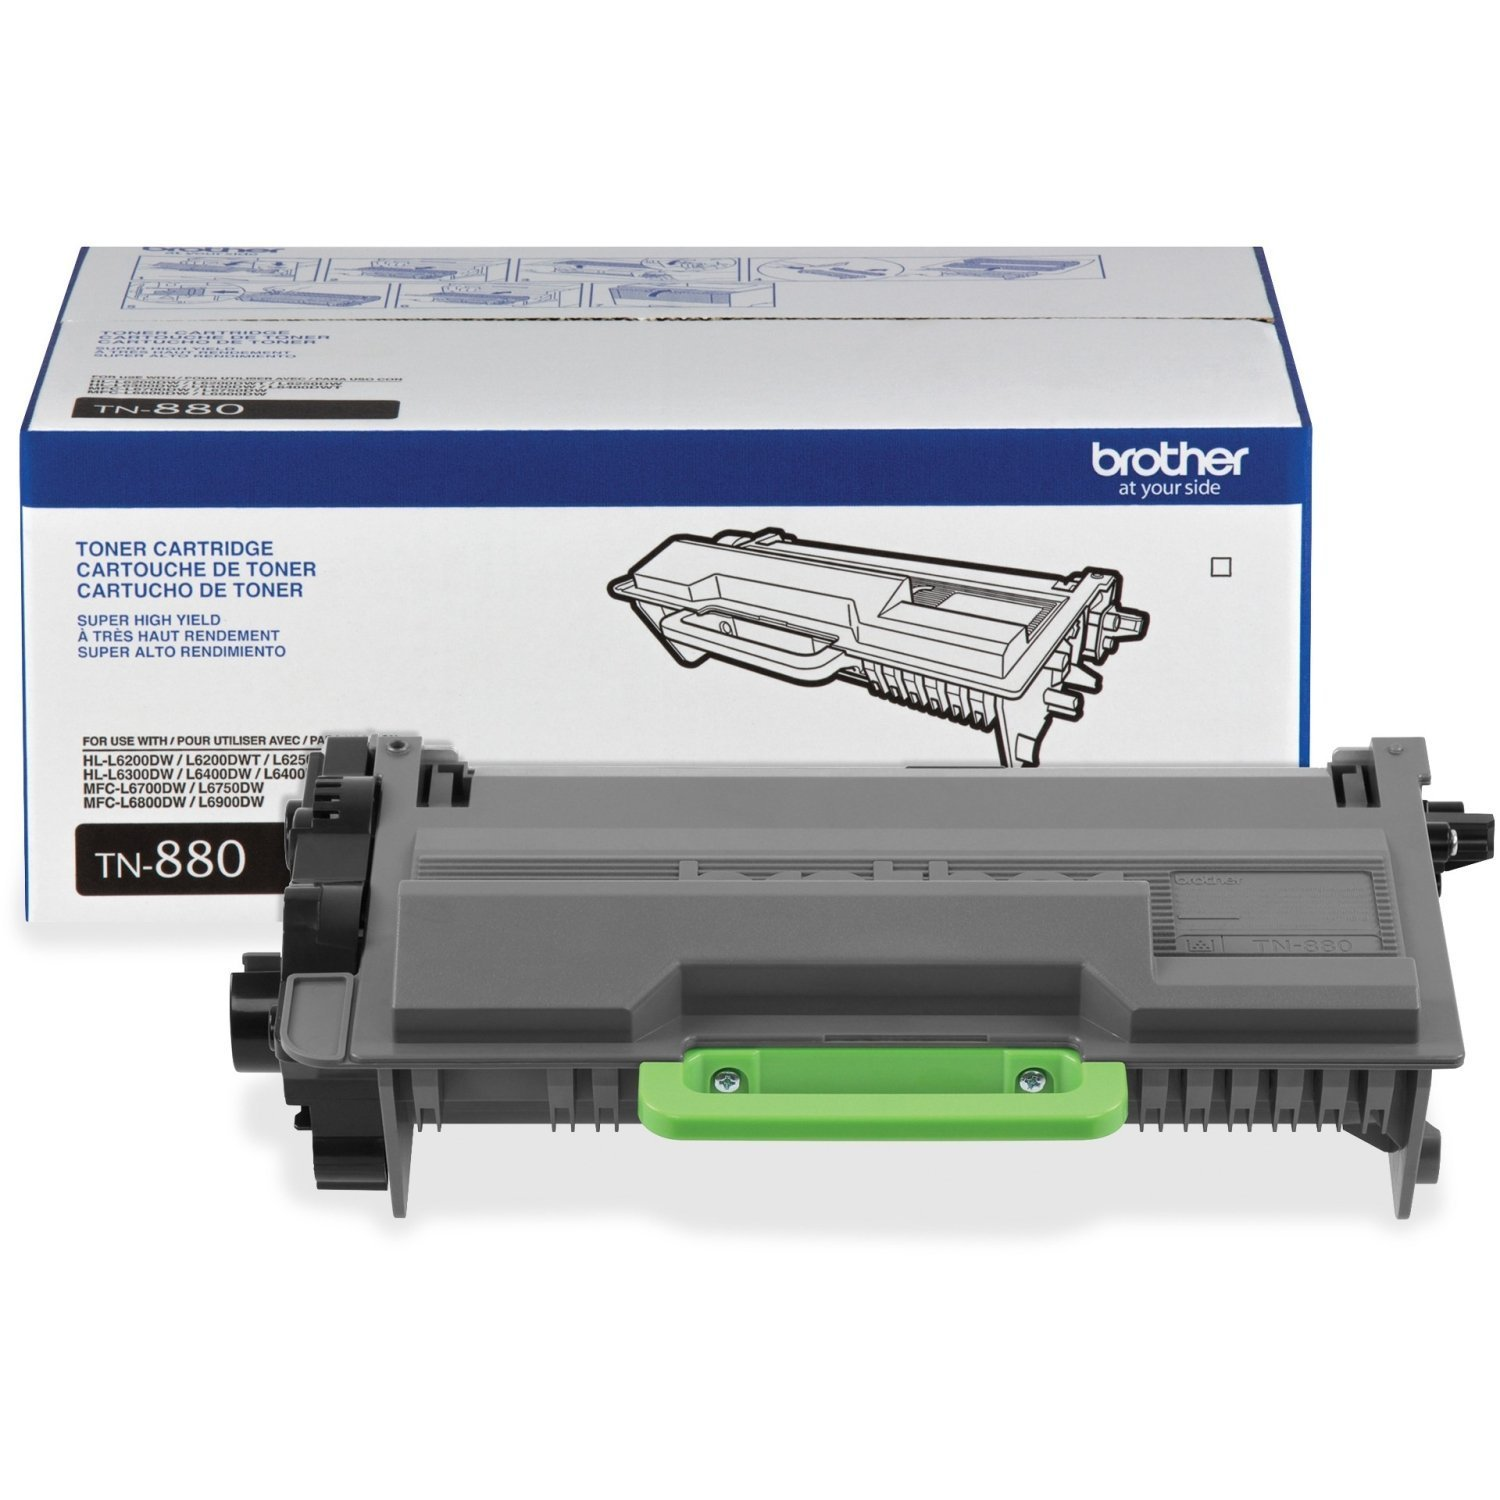 Brother Printer zIMvB Super High Yield Toner, TN880 (2 Pack)